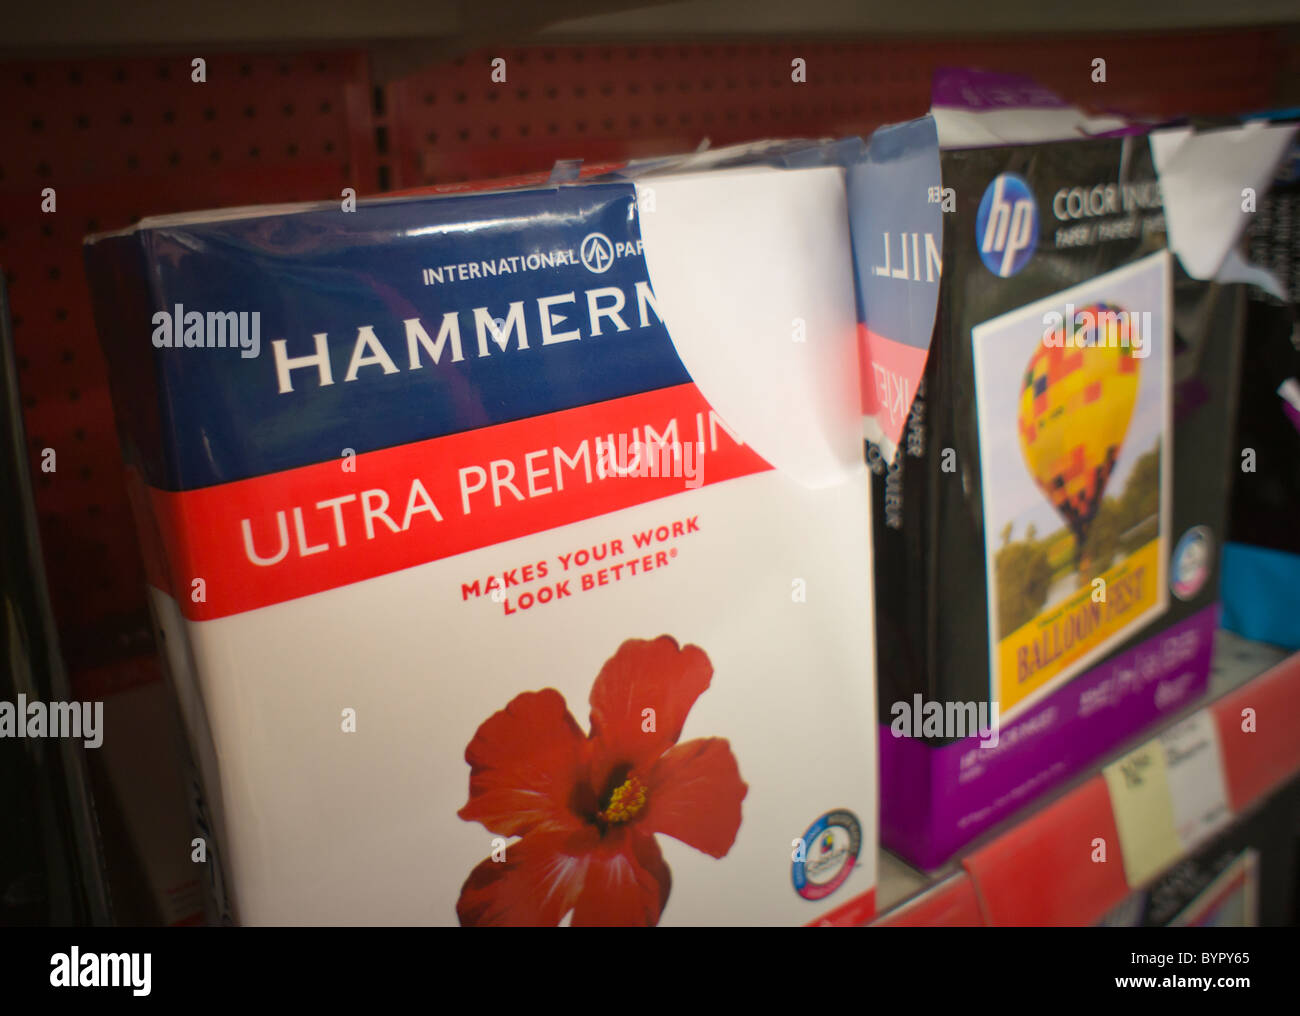 Reams Of Paper Stock Photos & Reams Of Paper Stock Images - Alamy